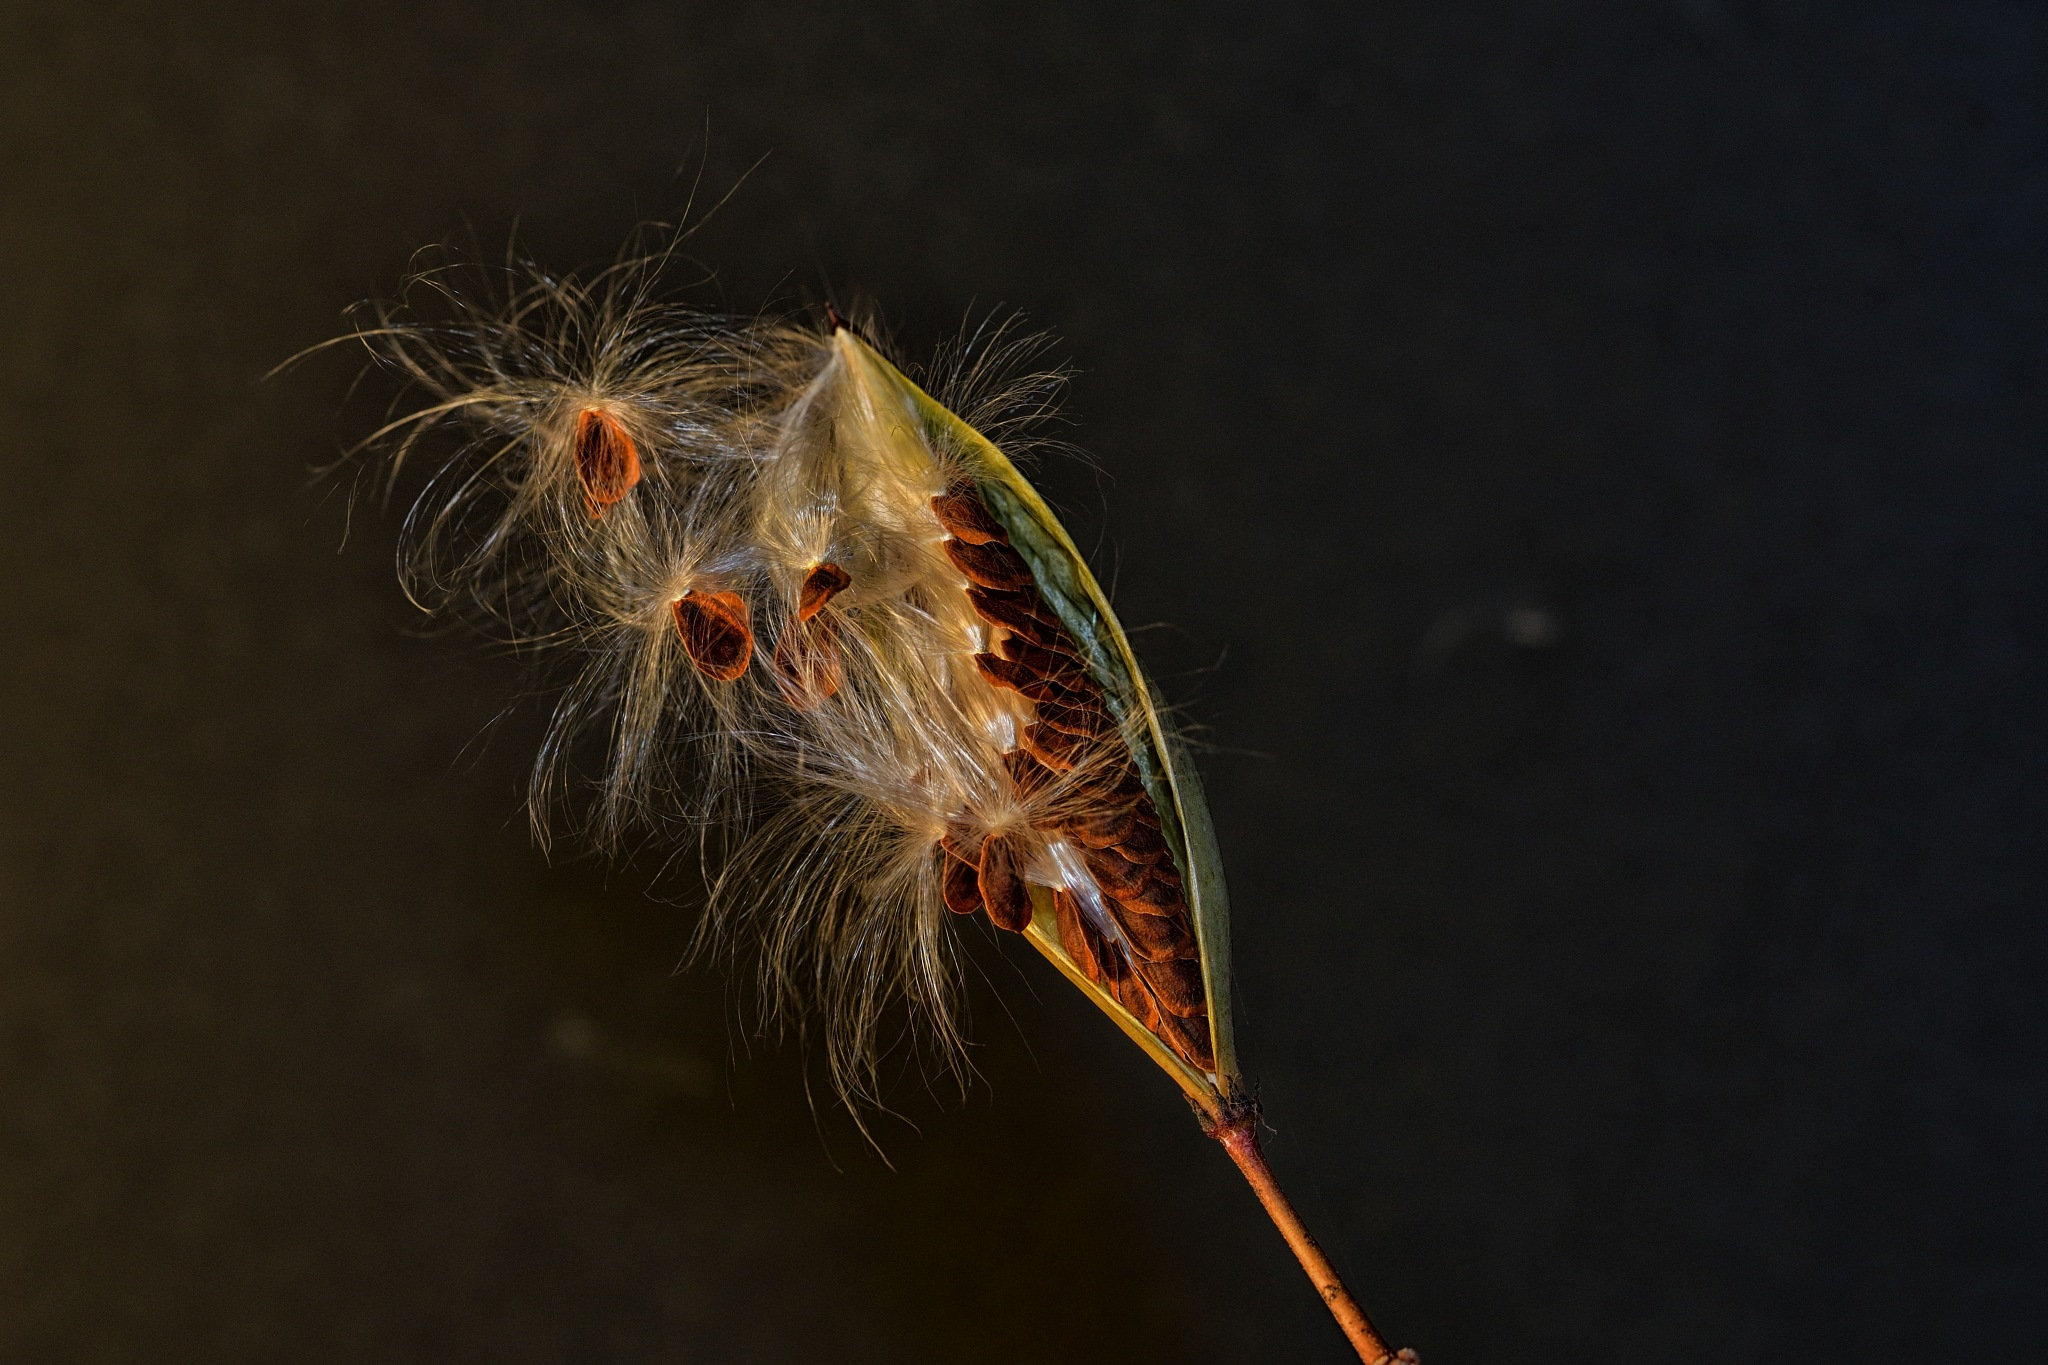 Milkweed Seed Pod by SheilaPatterson